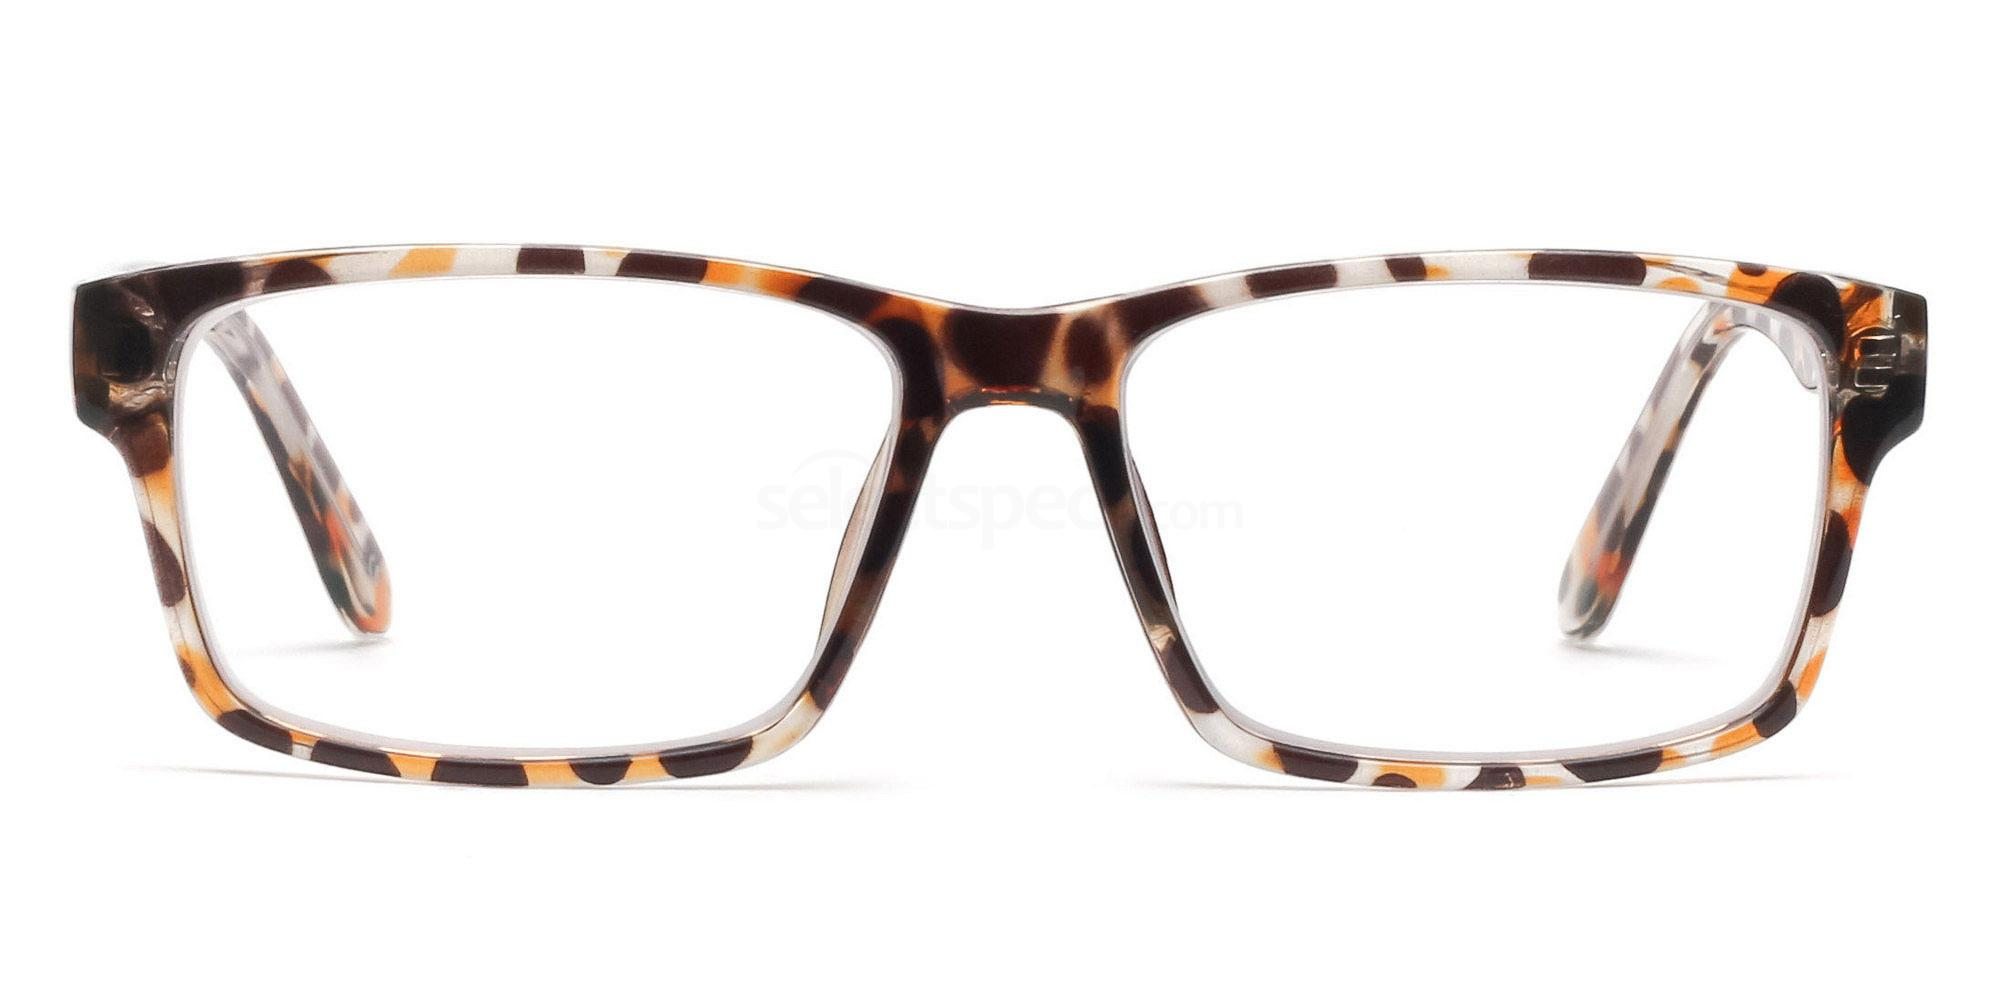 COL.06 2376 - Animal Print Glasses, Savannah